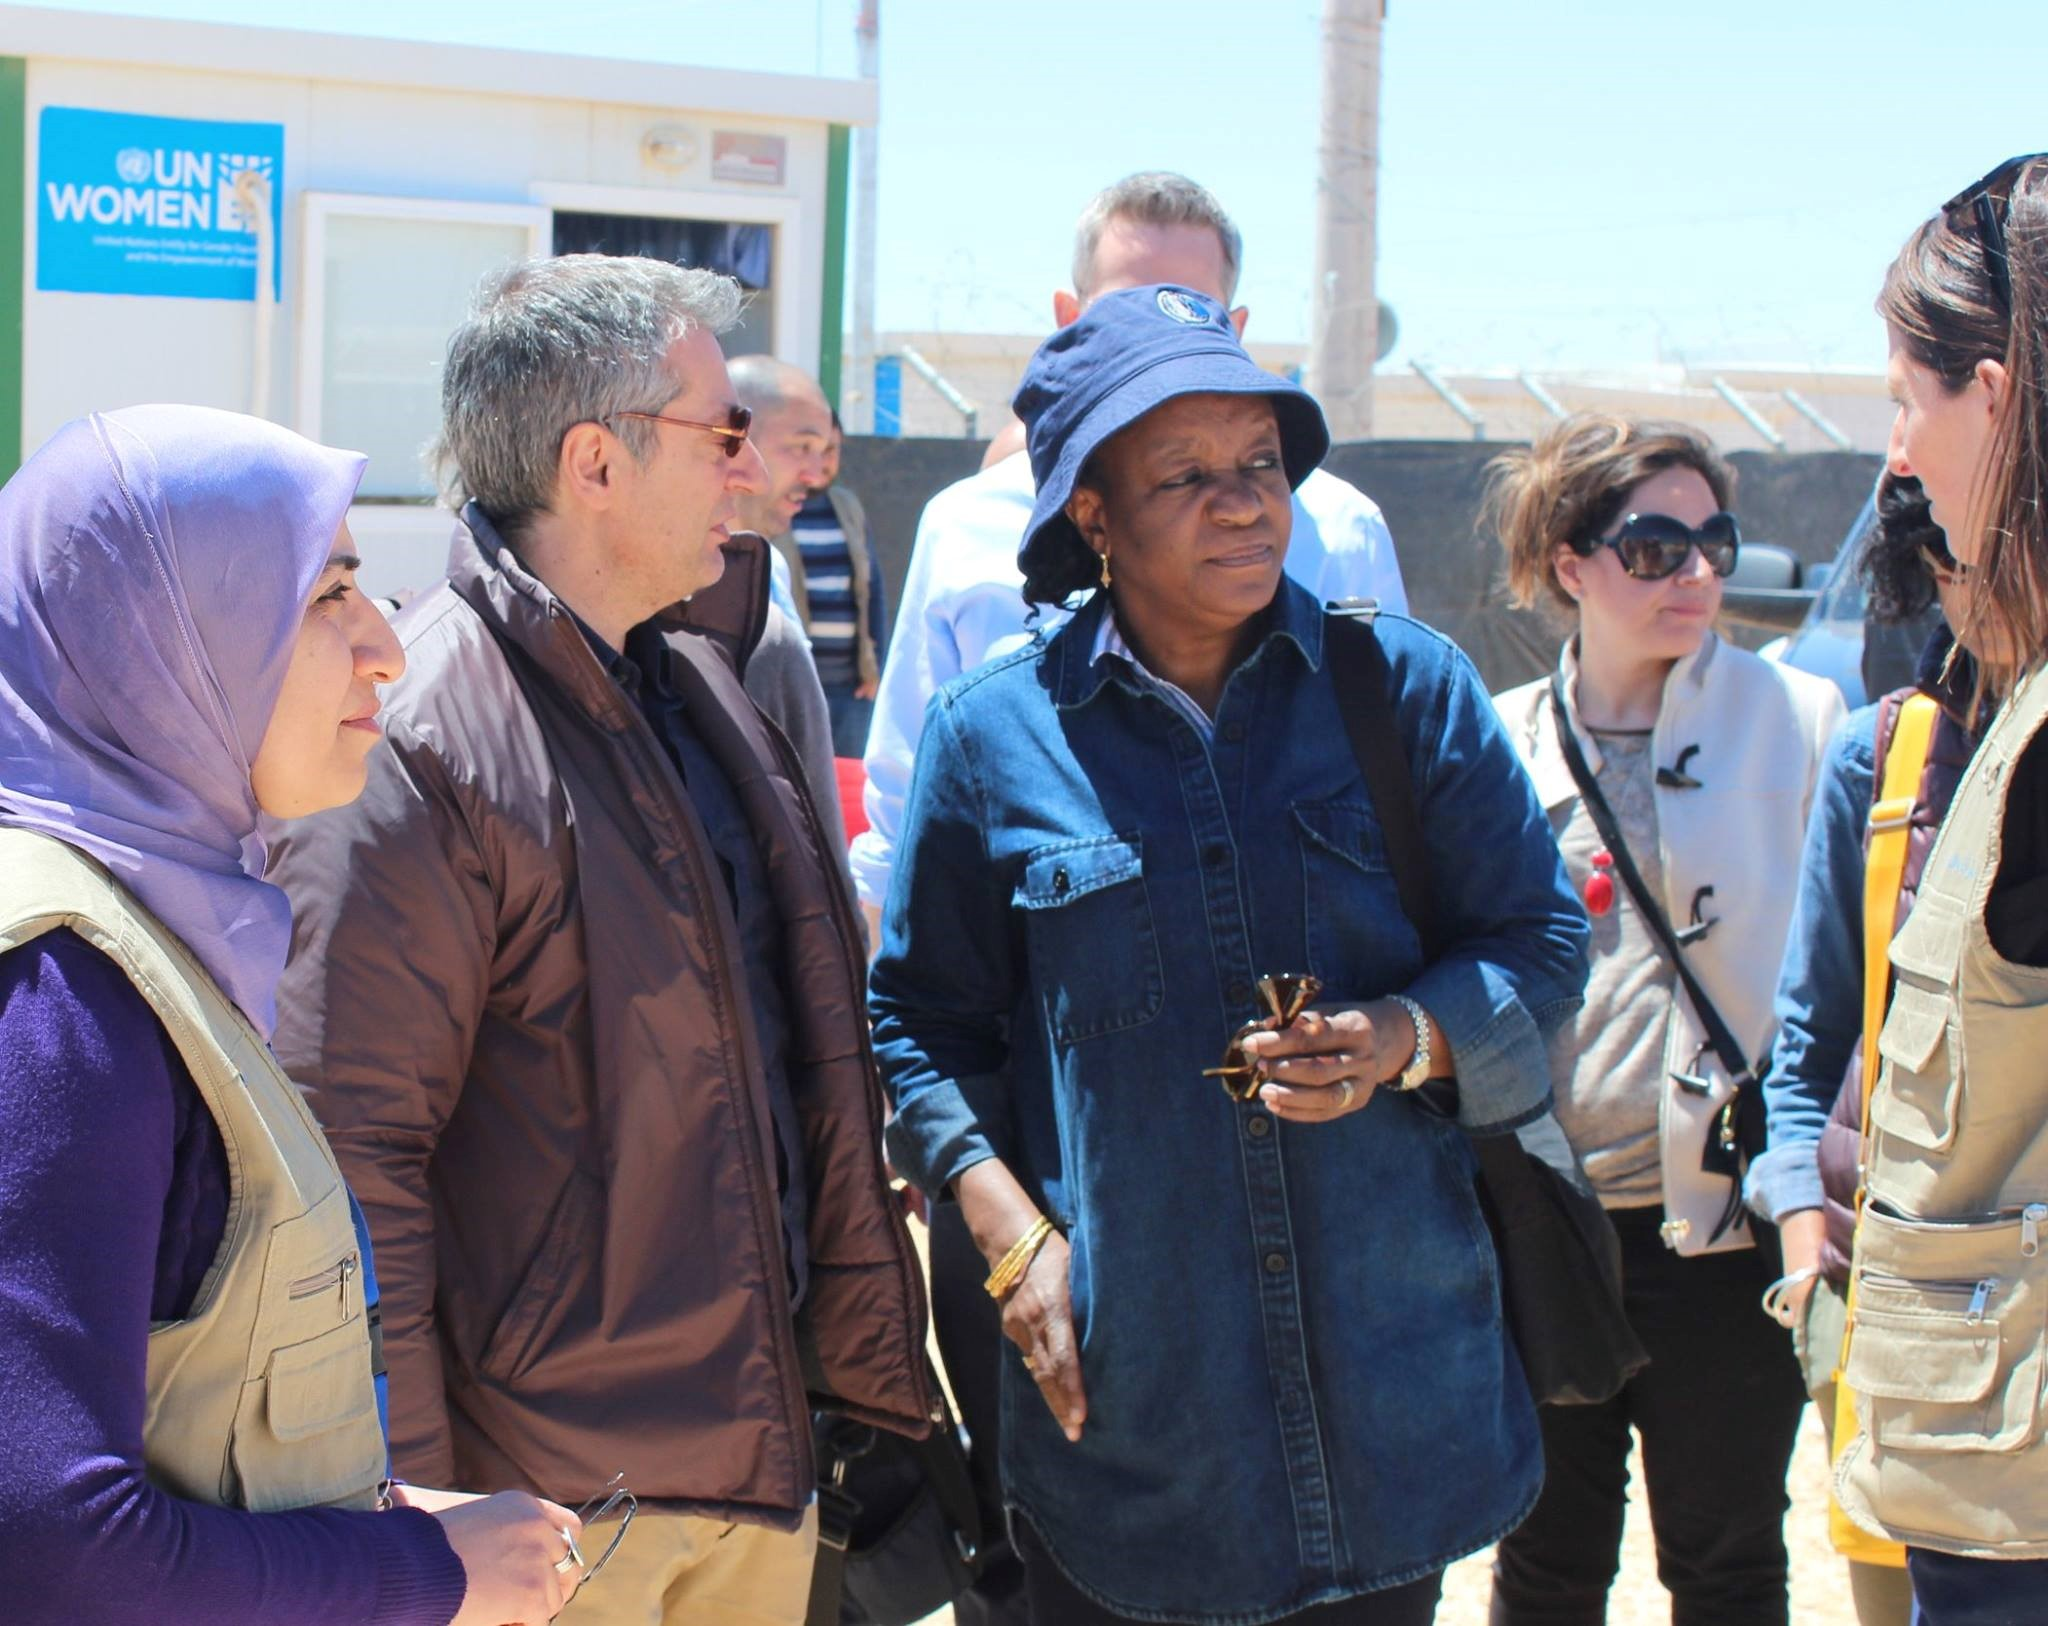 Special Representative of the Secretary General on Sexual Violence in Conflict visits Jordan for first time